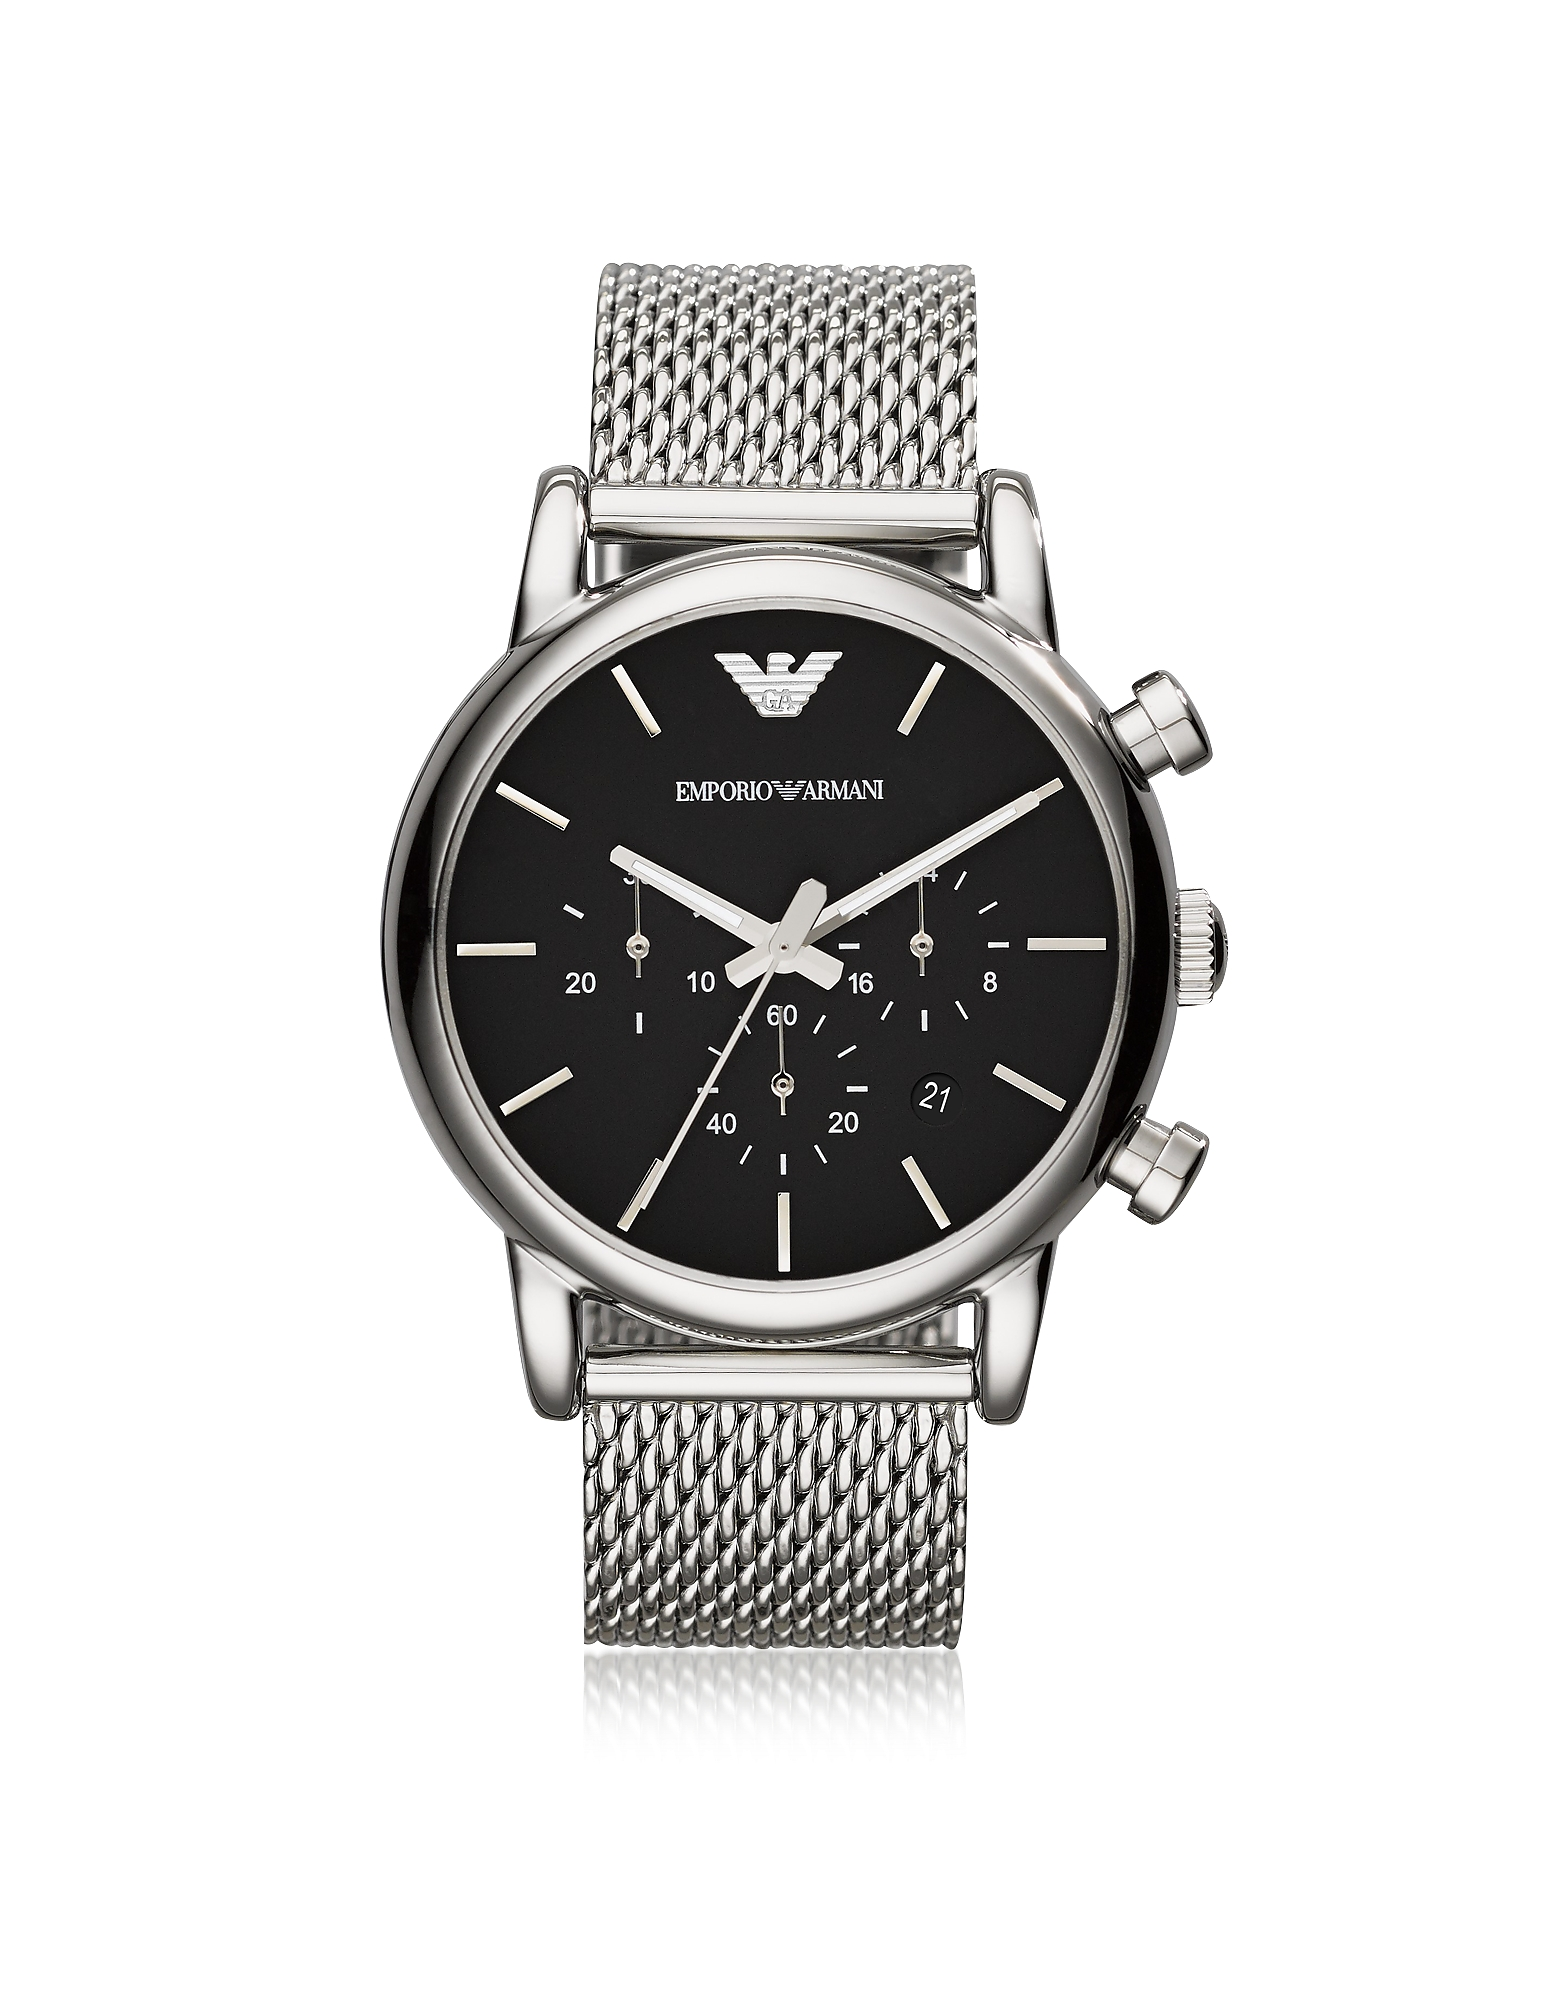 Emporio Armani Men's Watches, Stainless Steel Black Dial Men's Watch w/Mesh Band